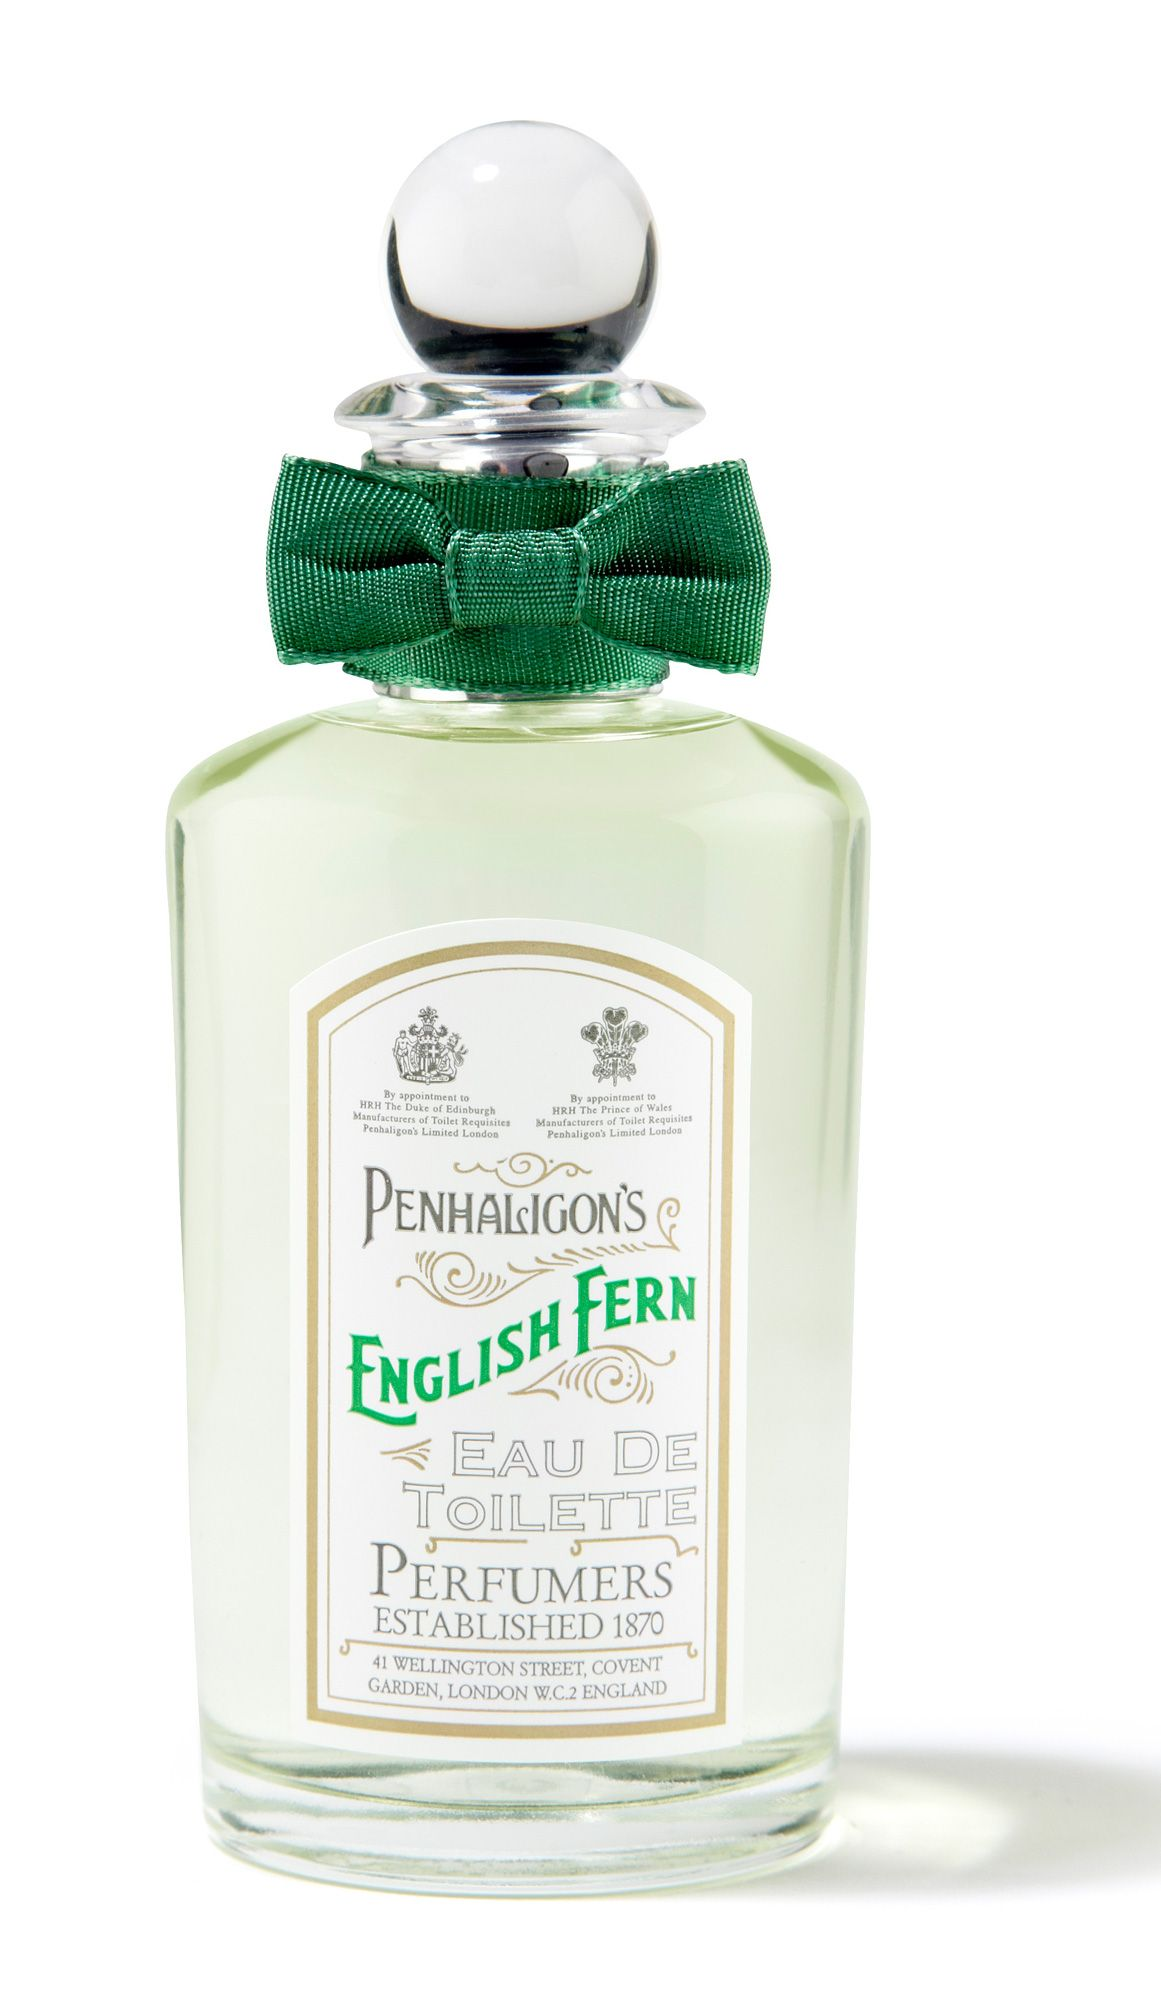 English Fern Eau de Toilette 50ml